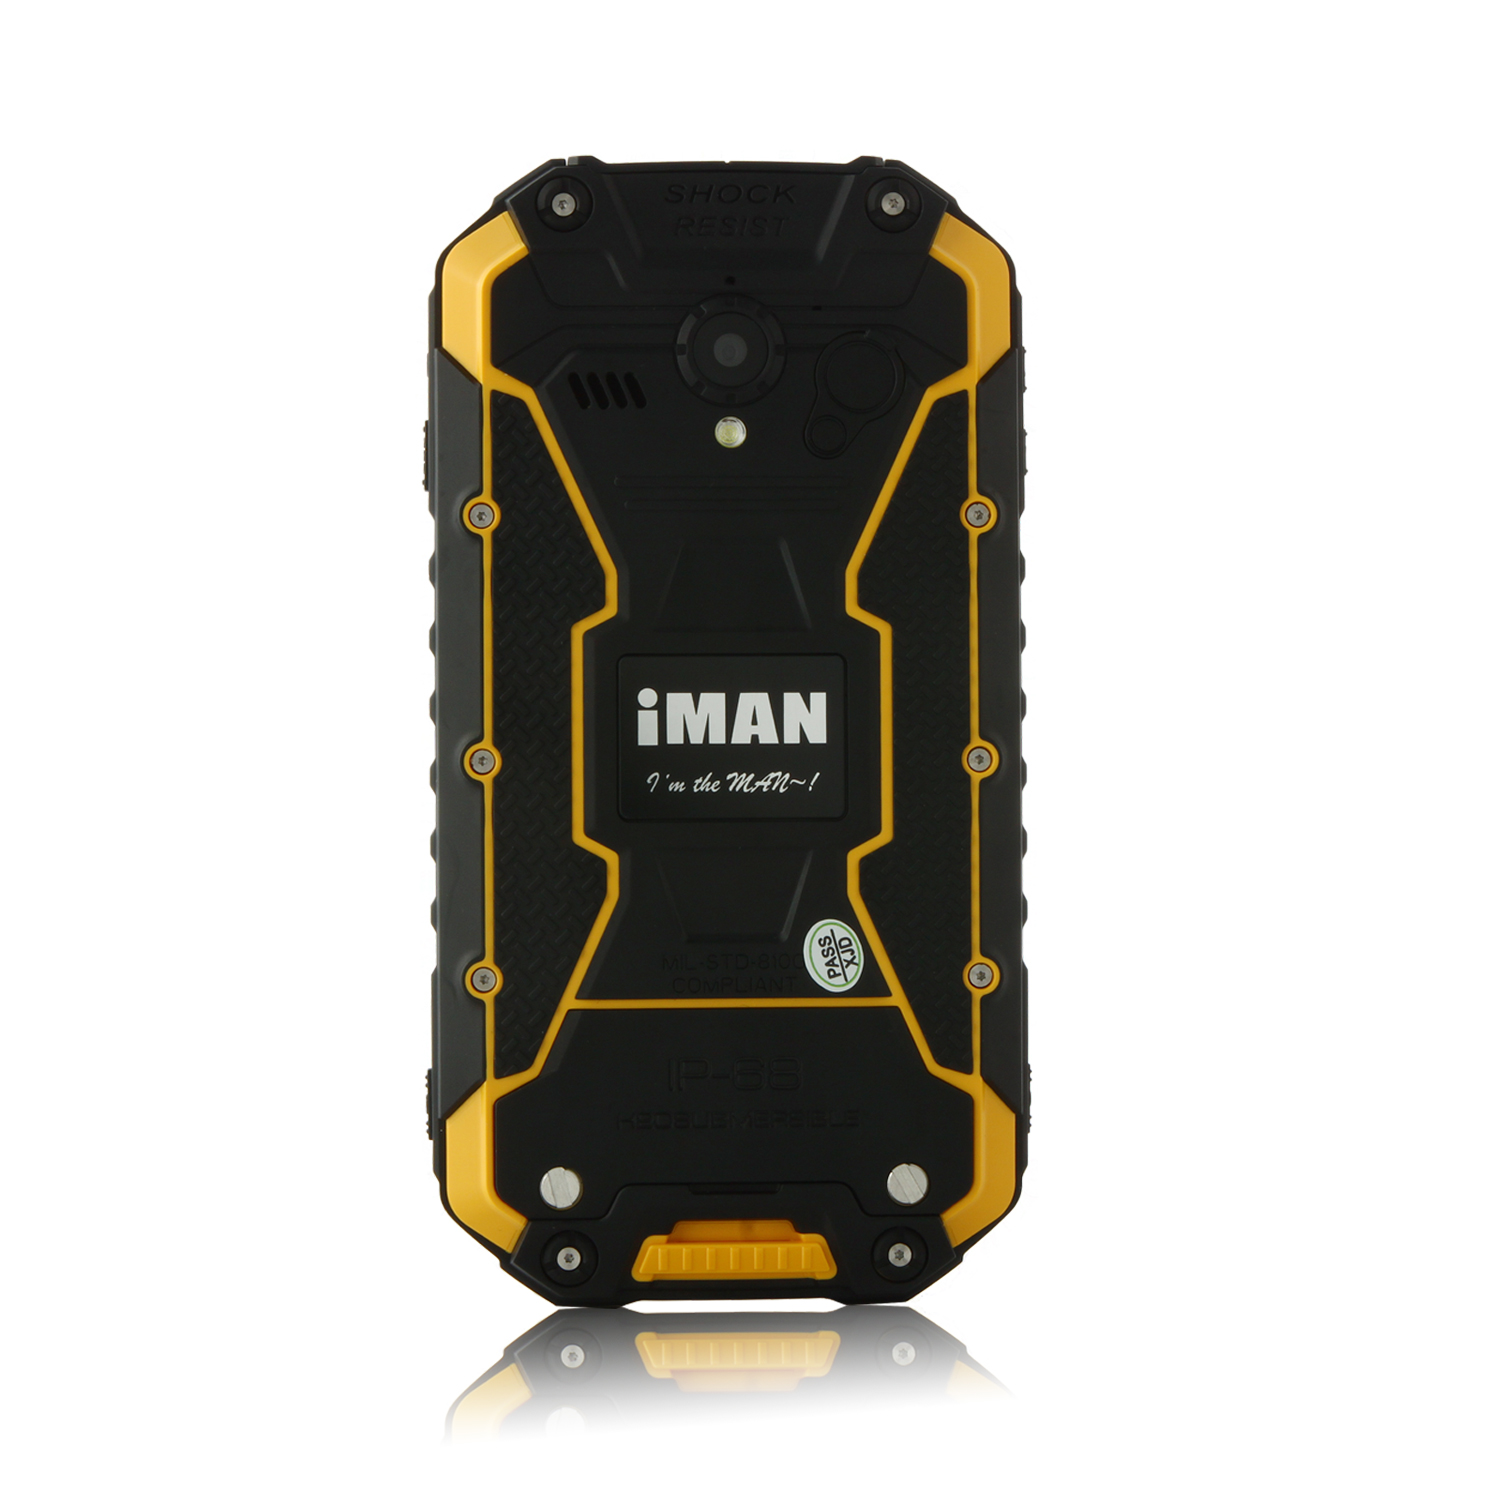 iMAN i6 Walkie Talkie Smartphone IP68 Android 4.4 MTK6592 4.7 Inch 2GB 32GB NFC Yellow